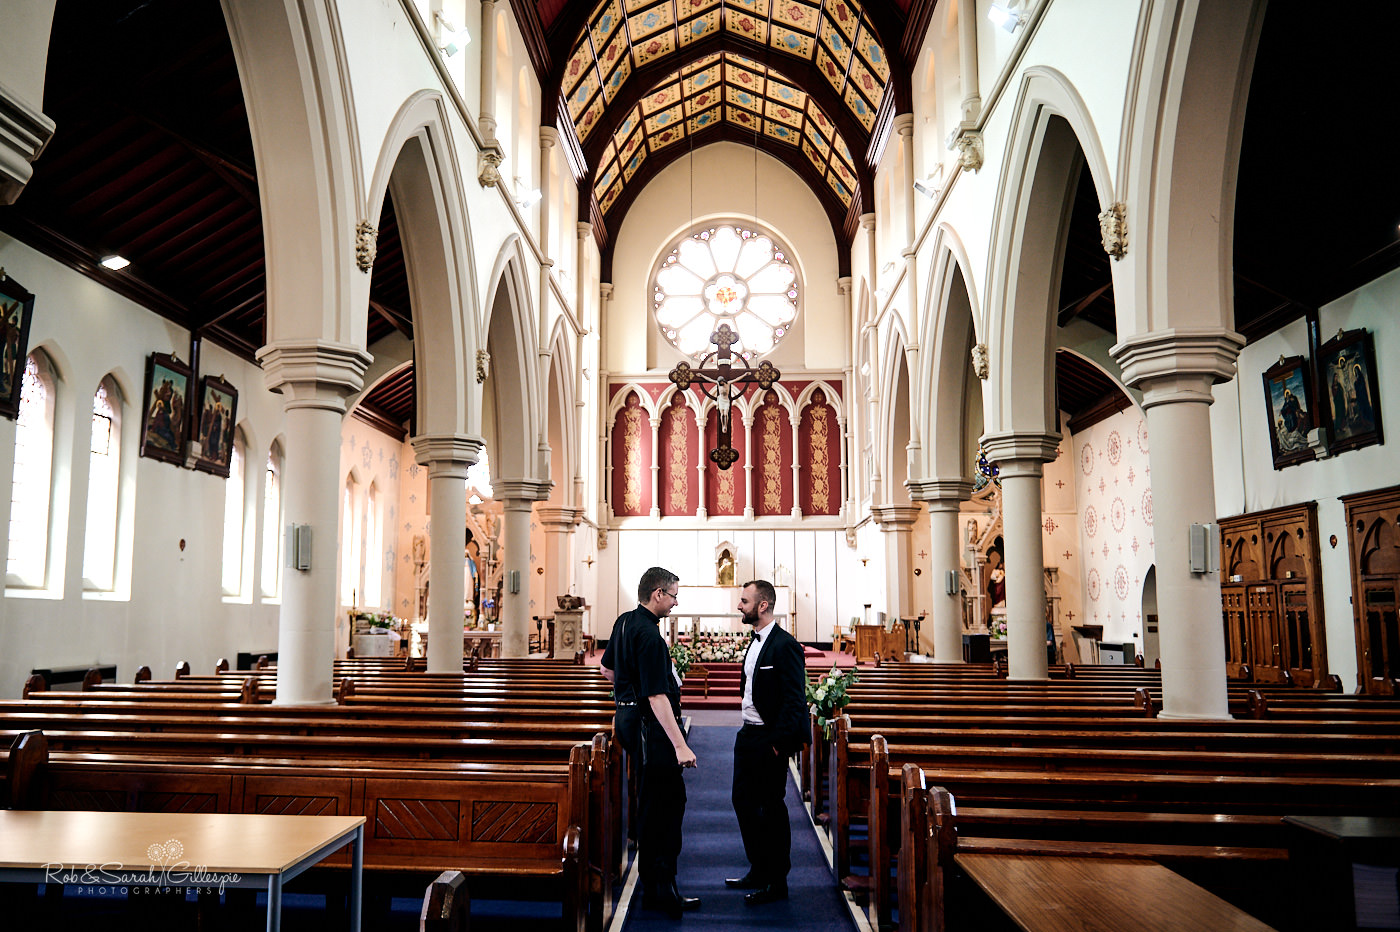 Groom greets wedding guests inside St Anne's Roman Catholic church in Digbeth, Birmingham